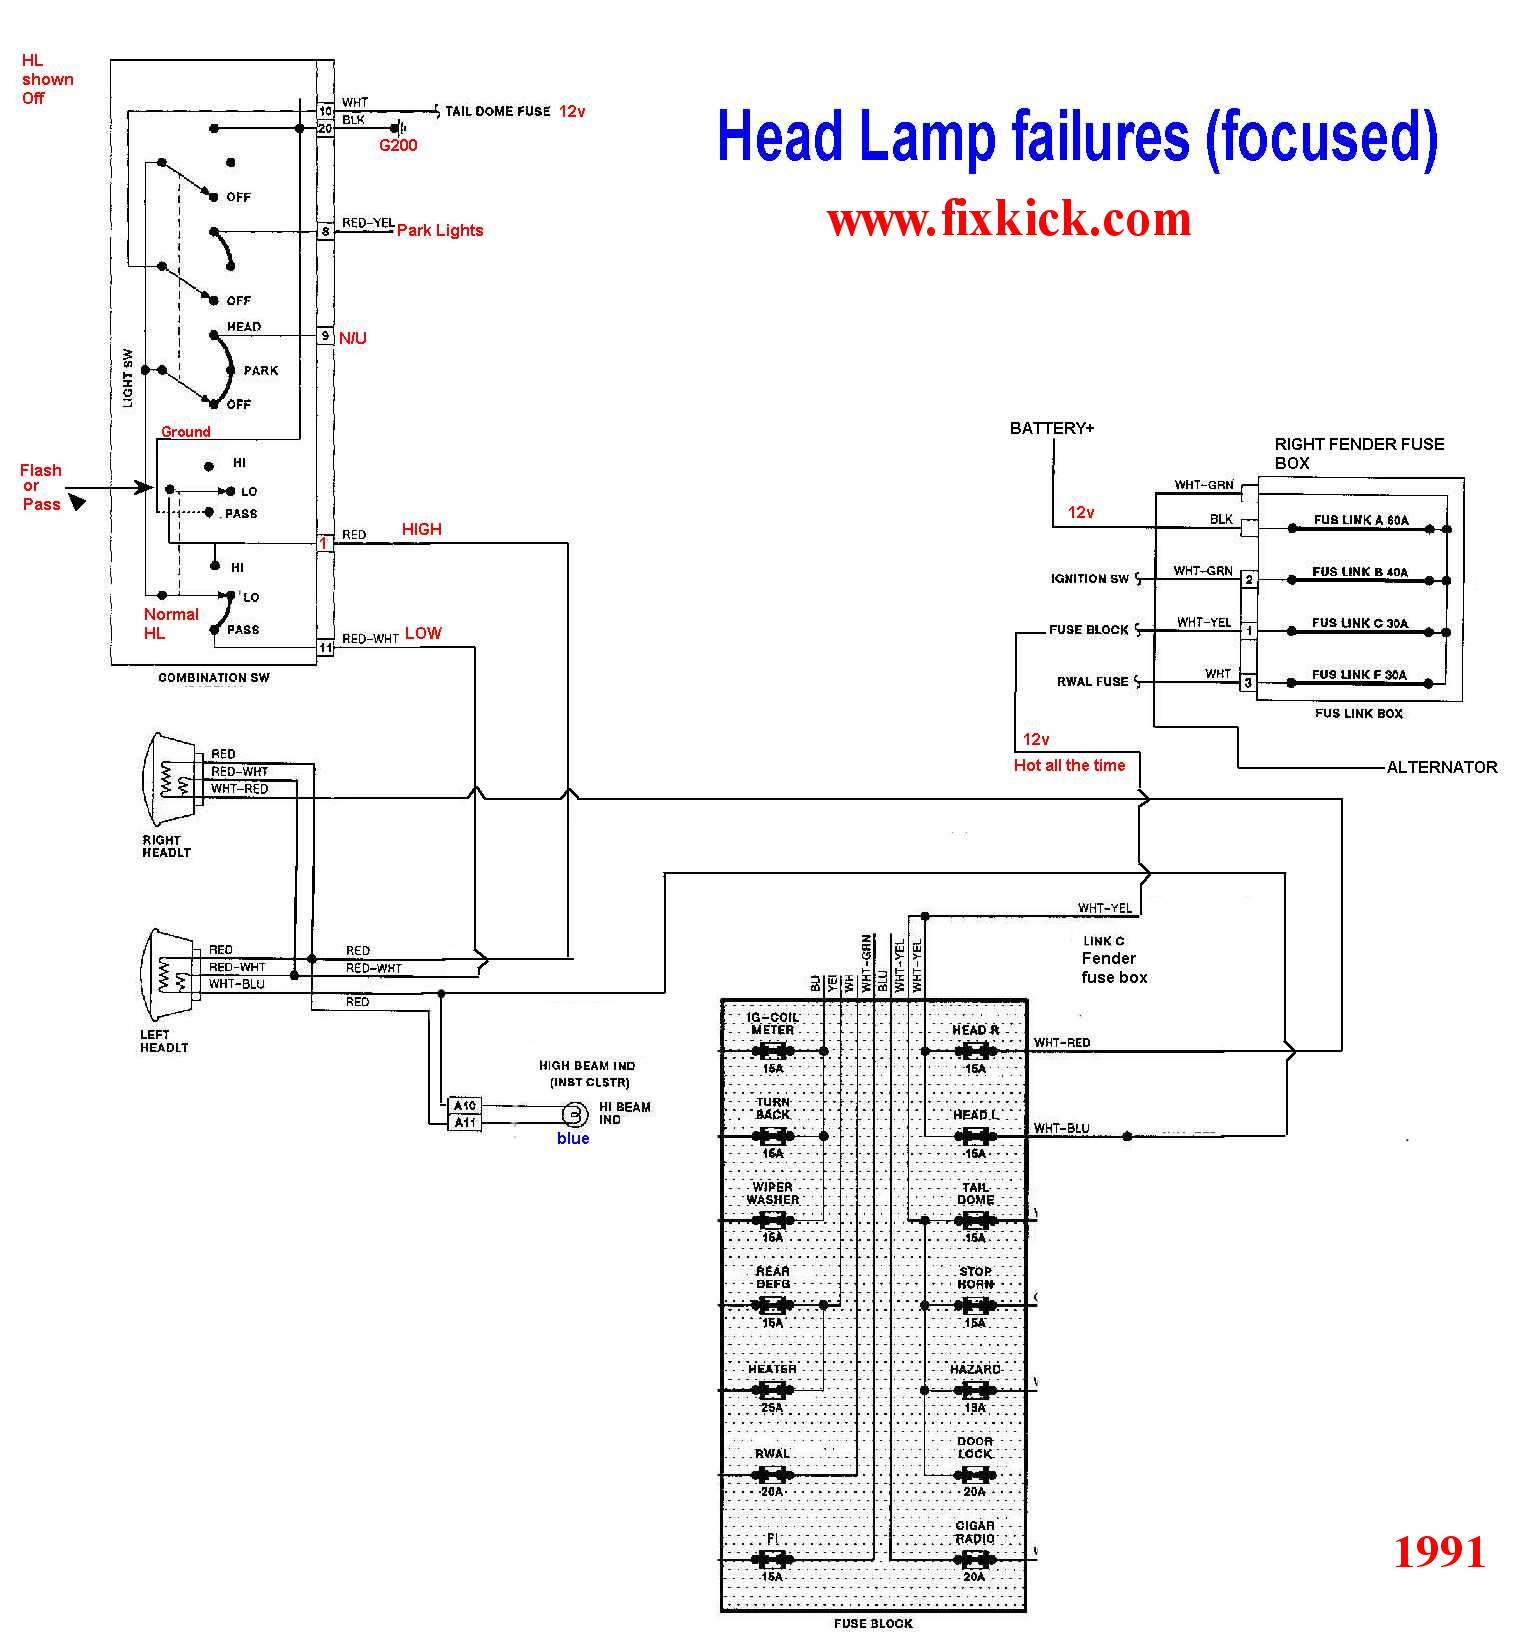 HL1A geo tracker wiring diagram 92 geo tracker wiring diagram \u2022 free 2000 chevy tracker wiring diagram at honlapkeszites.co